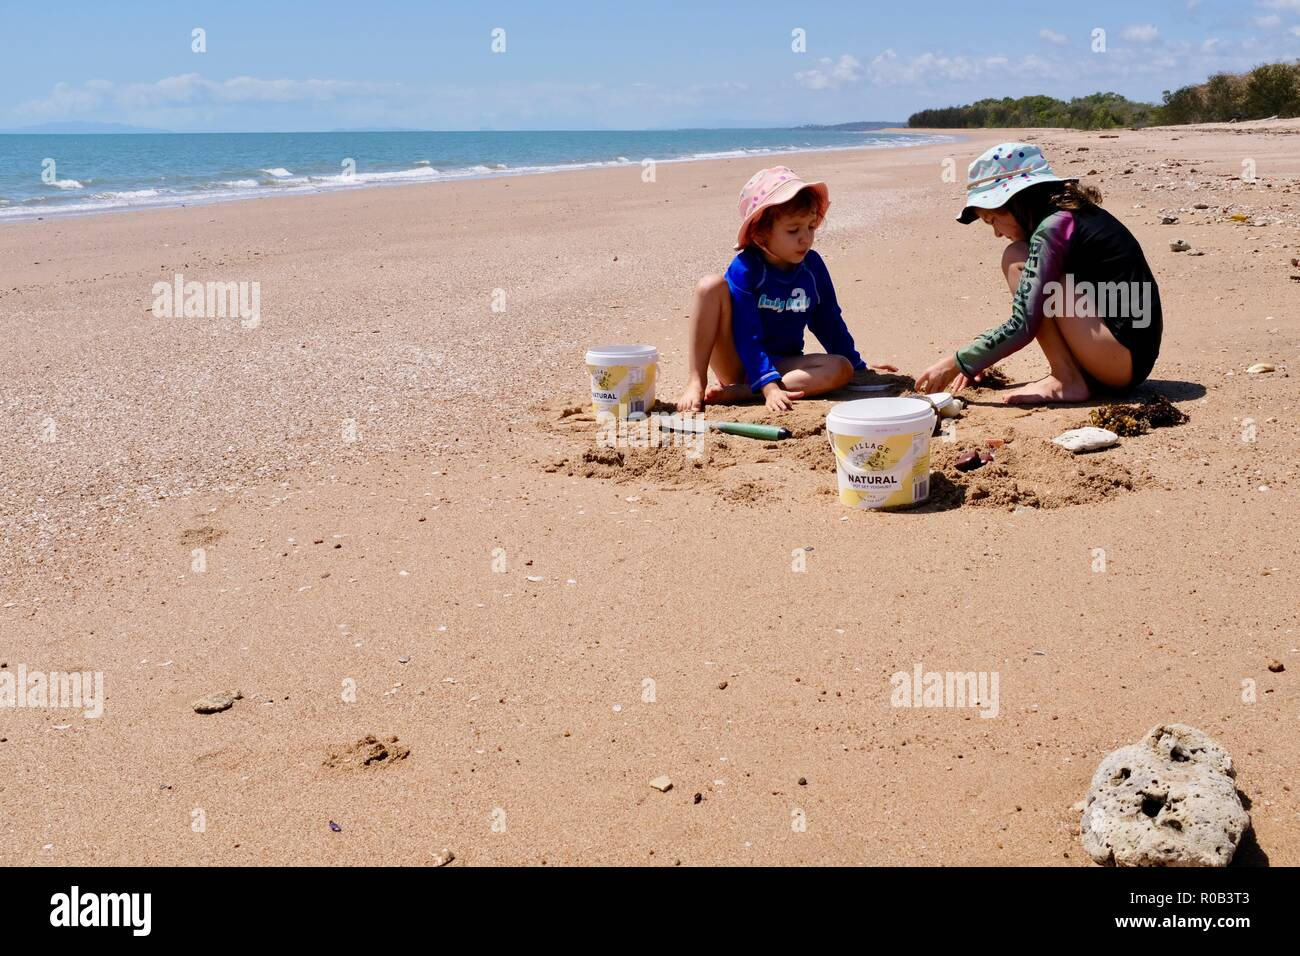 Children playing in the sand with buckets and spades, Balgal beach, QLD, Australia Stock Photo